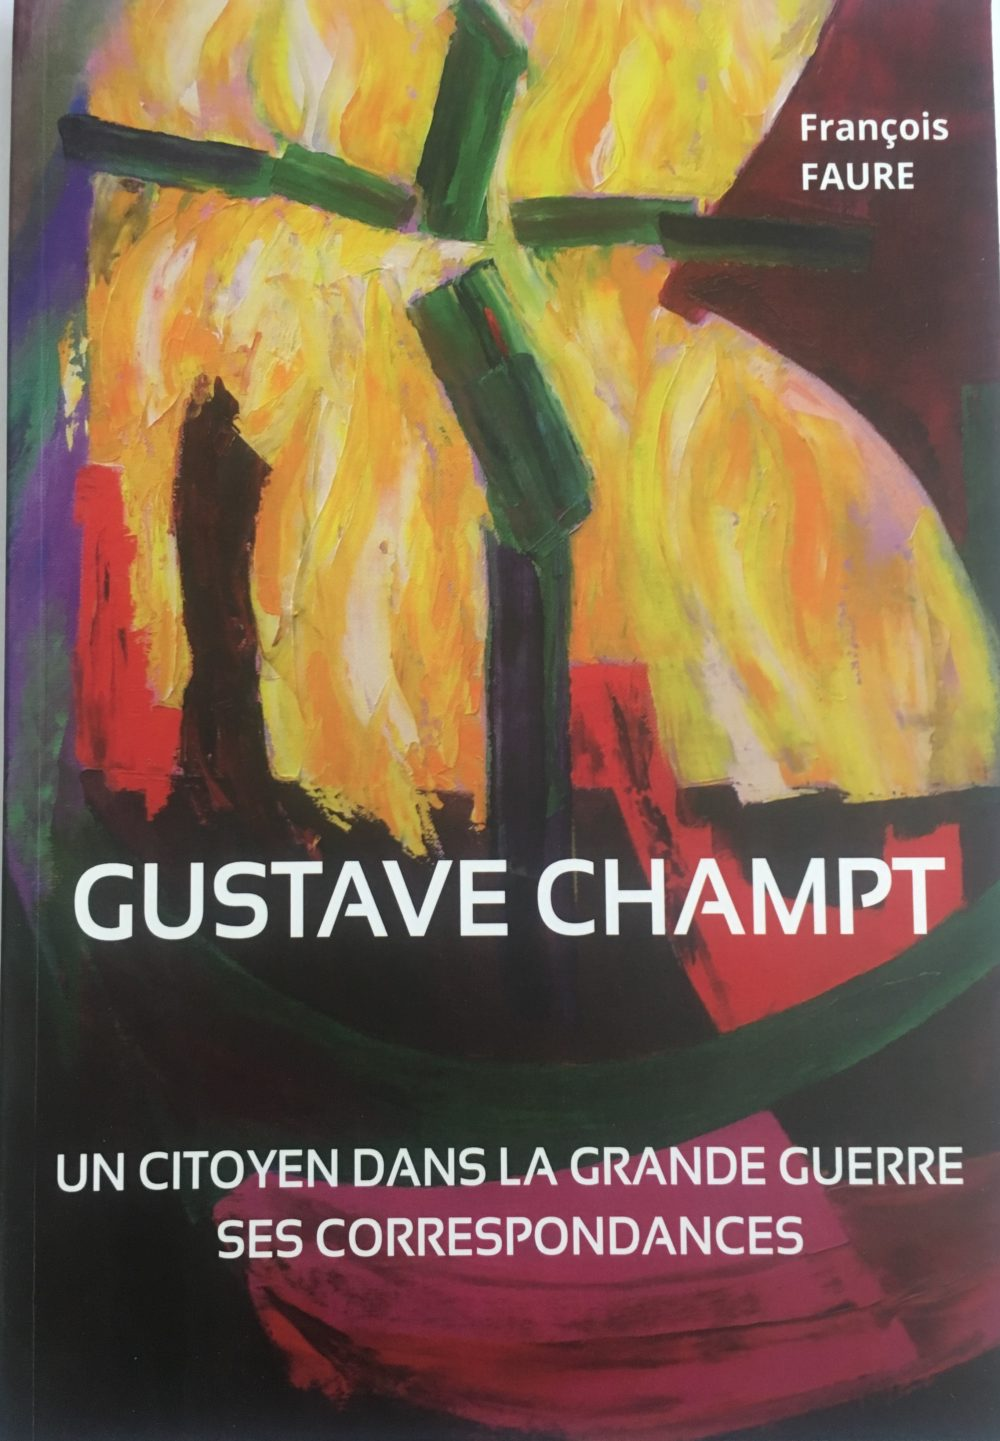 Gustave Champt